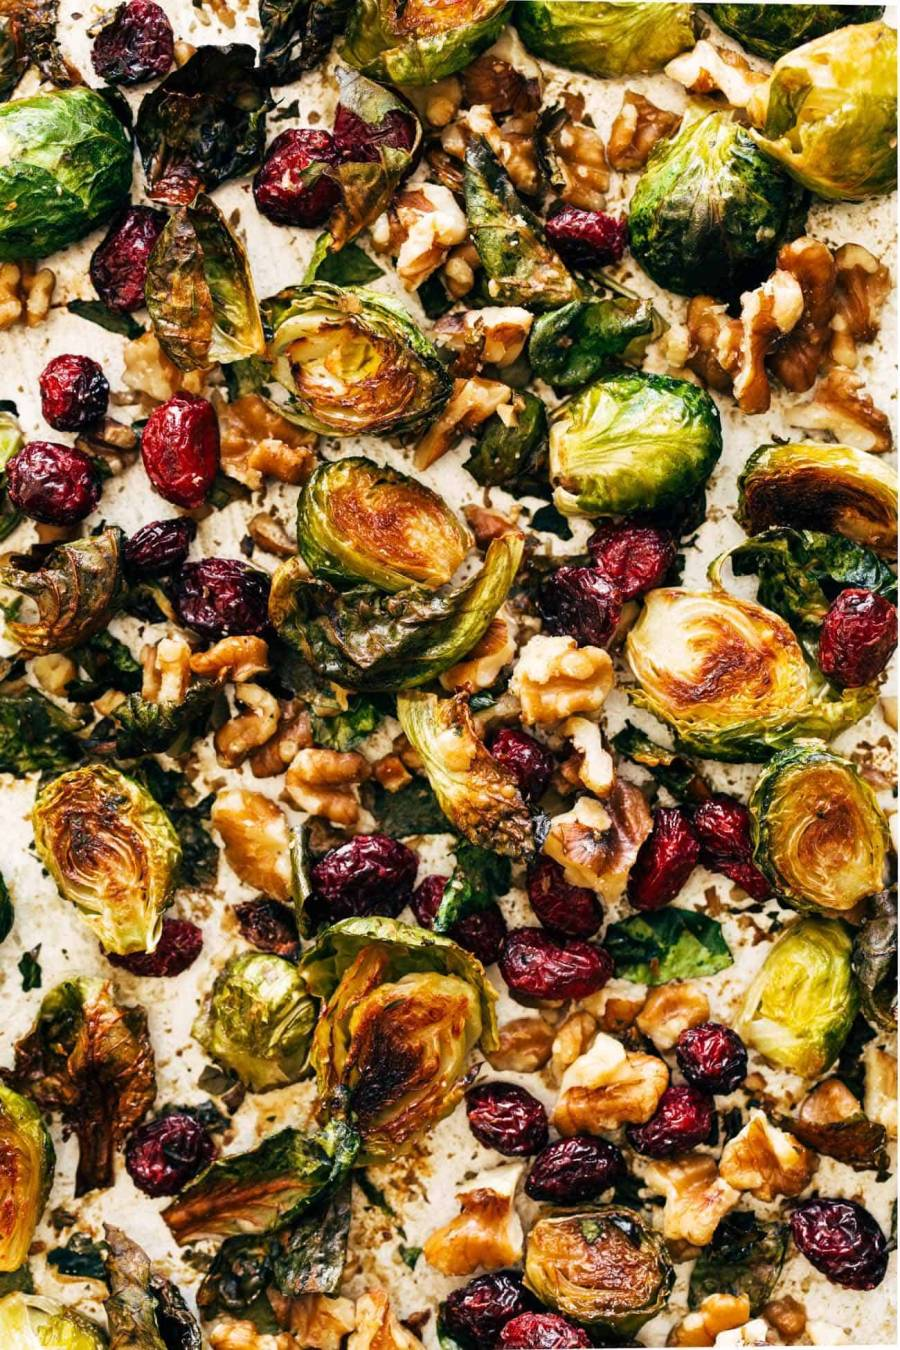 Close-up of Brussels sprouts on pan with walnuts and cranberries